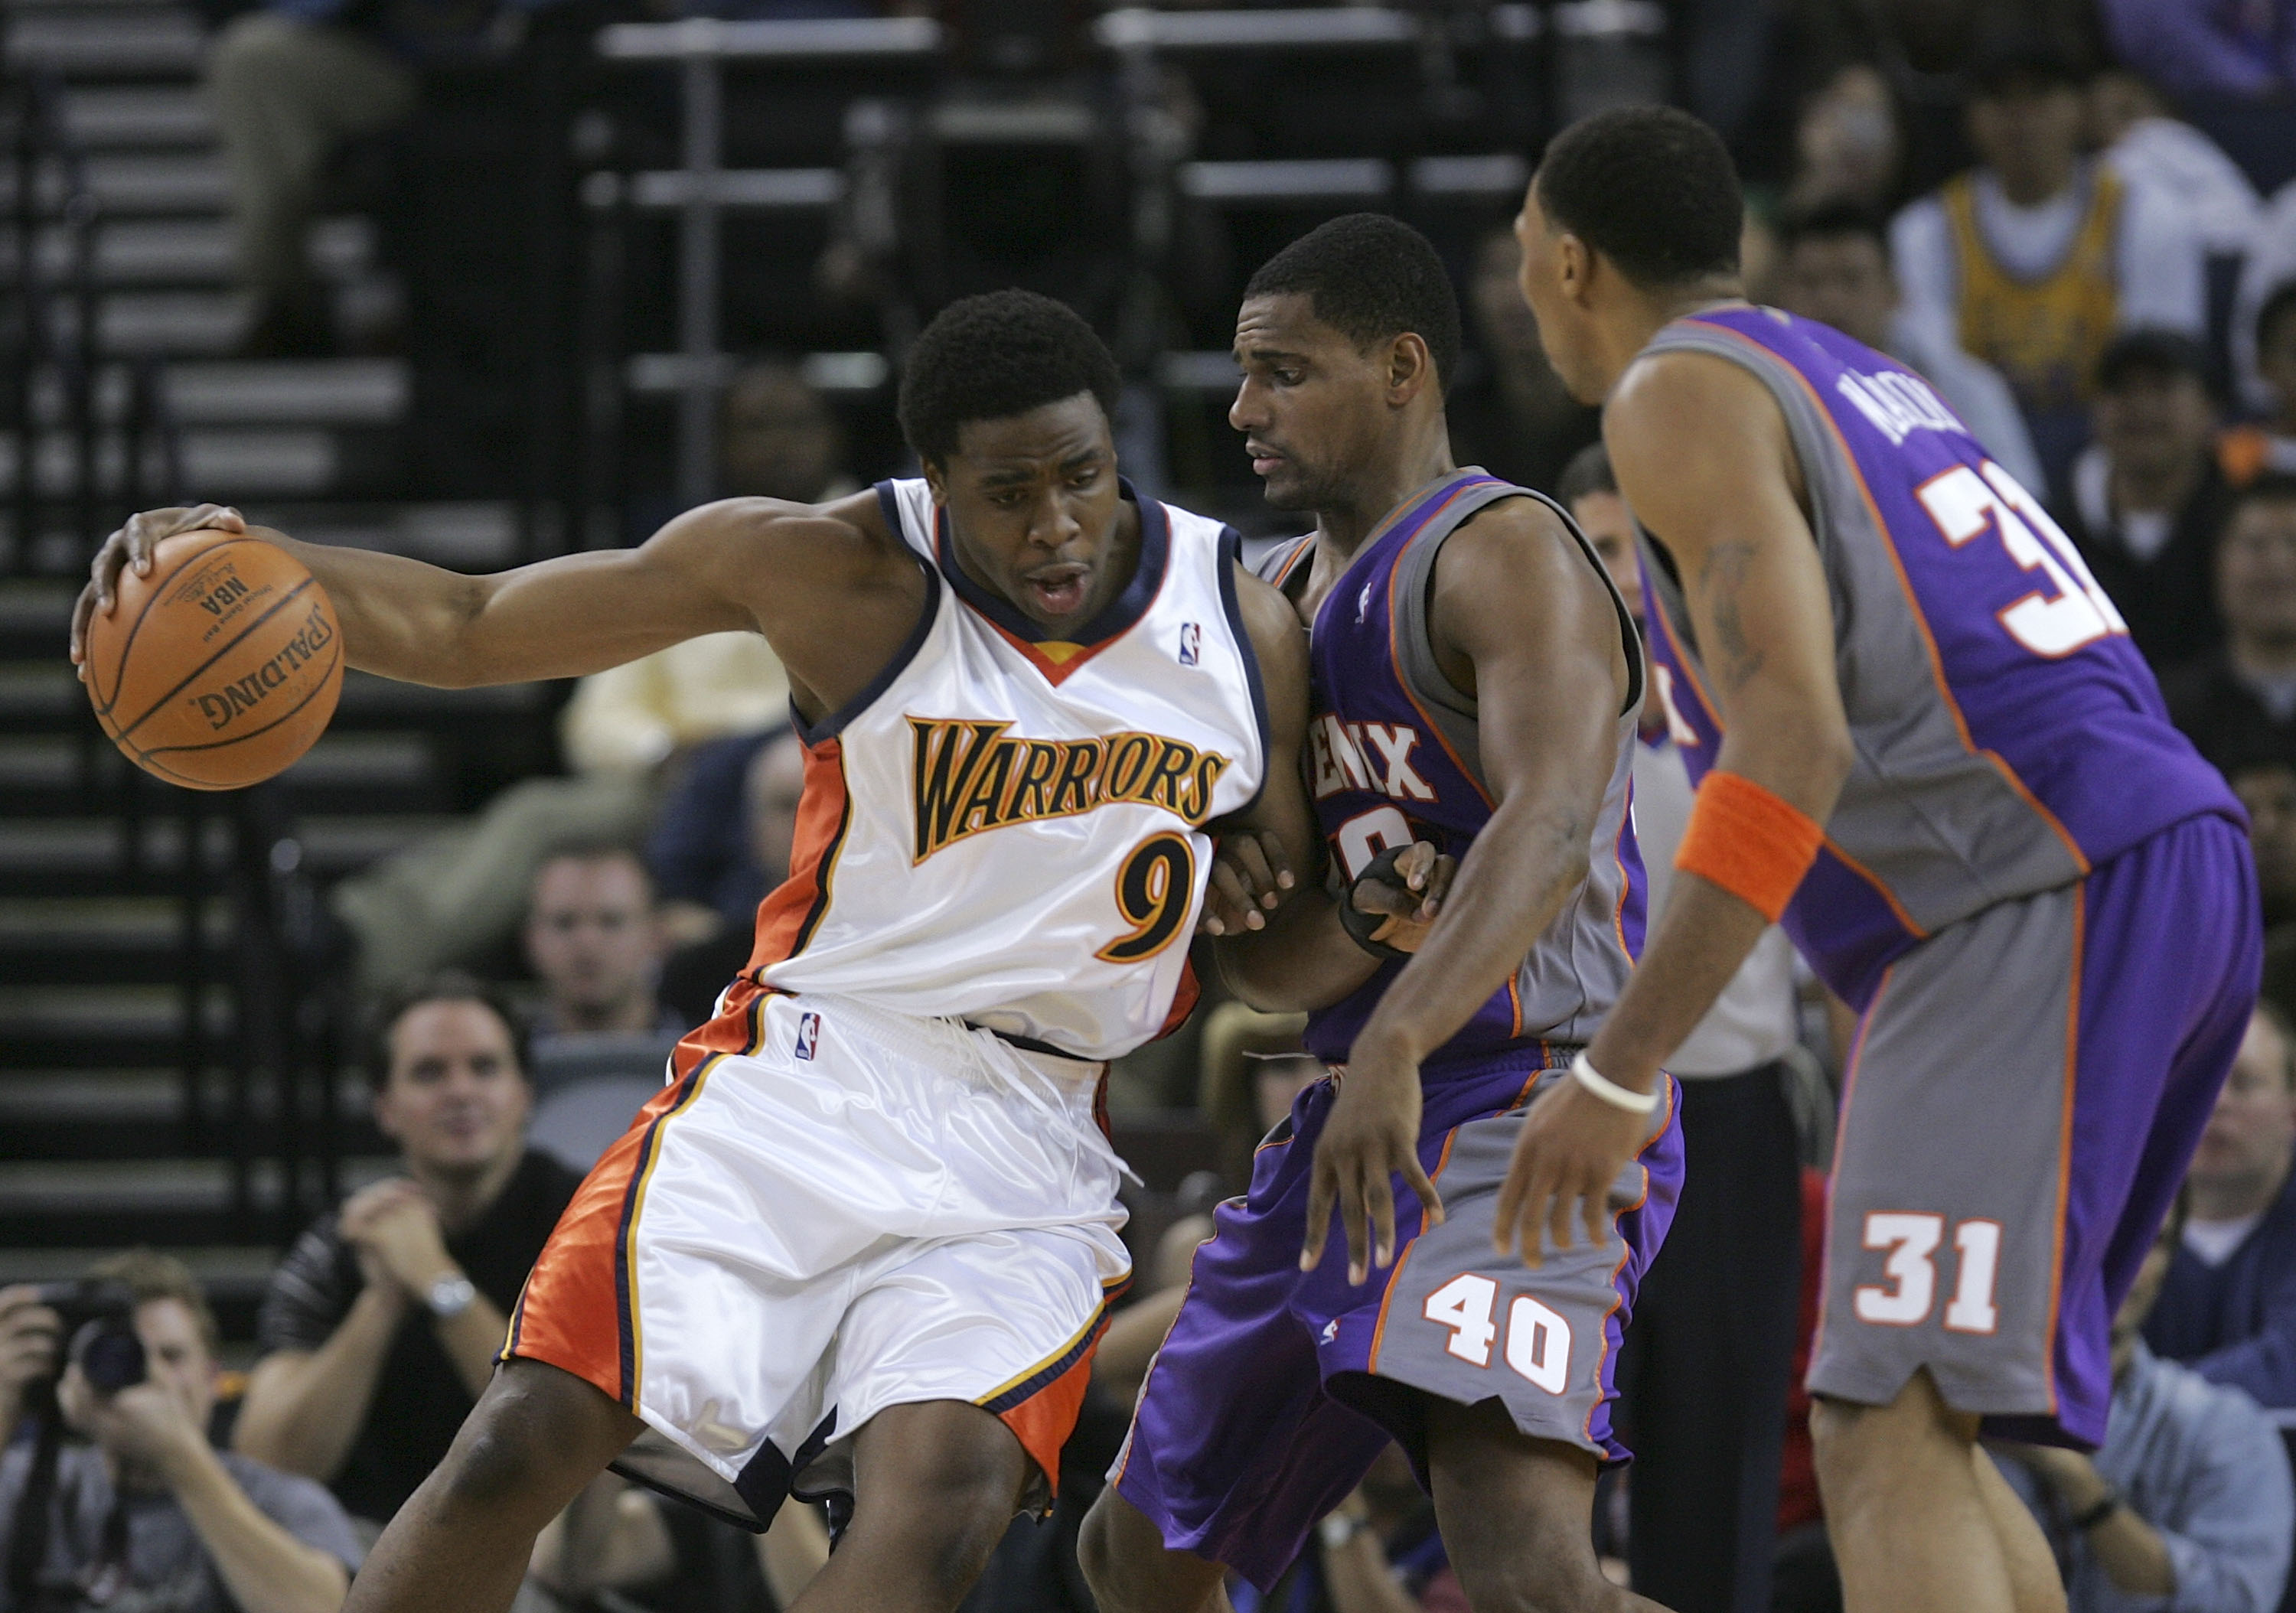 OAKLAND, CA - DECEMBER 07:  Ike Diogu #9 of the Golden State Warriors drives the ball as Kurt Thomas #40 and Shawn Marion #31 of the Phoenix Suns defend on December 7, 2005 at the Arena in Oakland, California. NOTE TO USER: User expressly acknowledges and